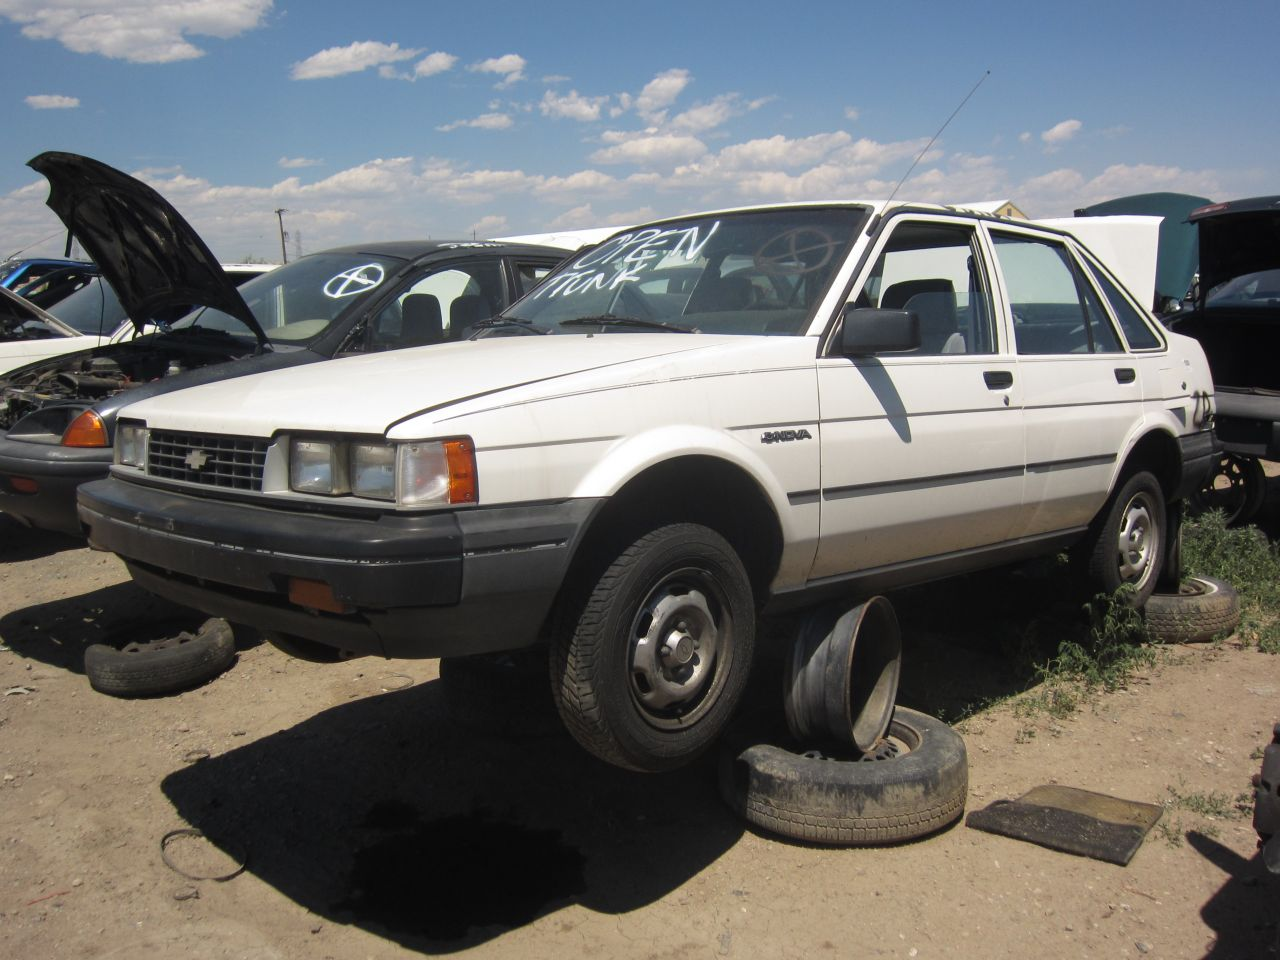 ford hatchback 1989 with Junkyard Find 1987 Chevrolet Nova Sedan on 1989 Ford F250 4x4 Extended Cab moreover Ford Thunderbird Sports Roadster Concept as well Junkyard Find 1987 Chevrolet Nova Sedan likewise Rover 75 2 0 V6 Club further Watch.